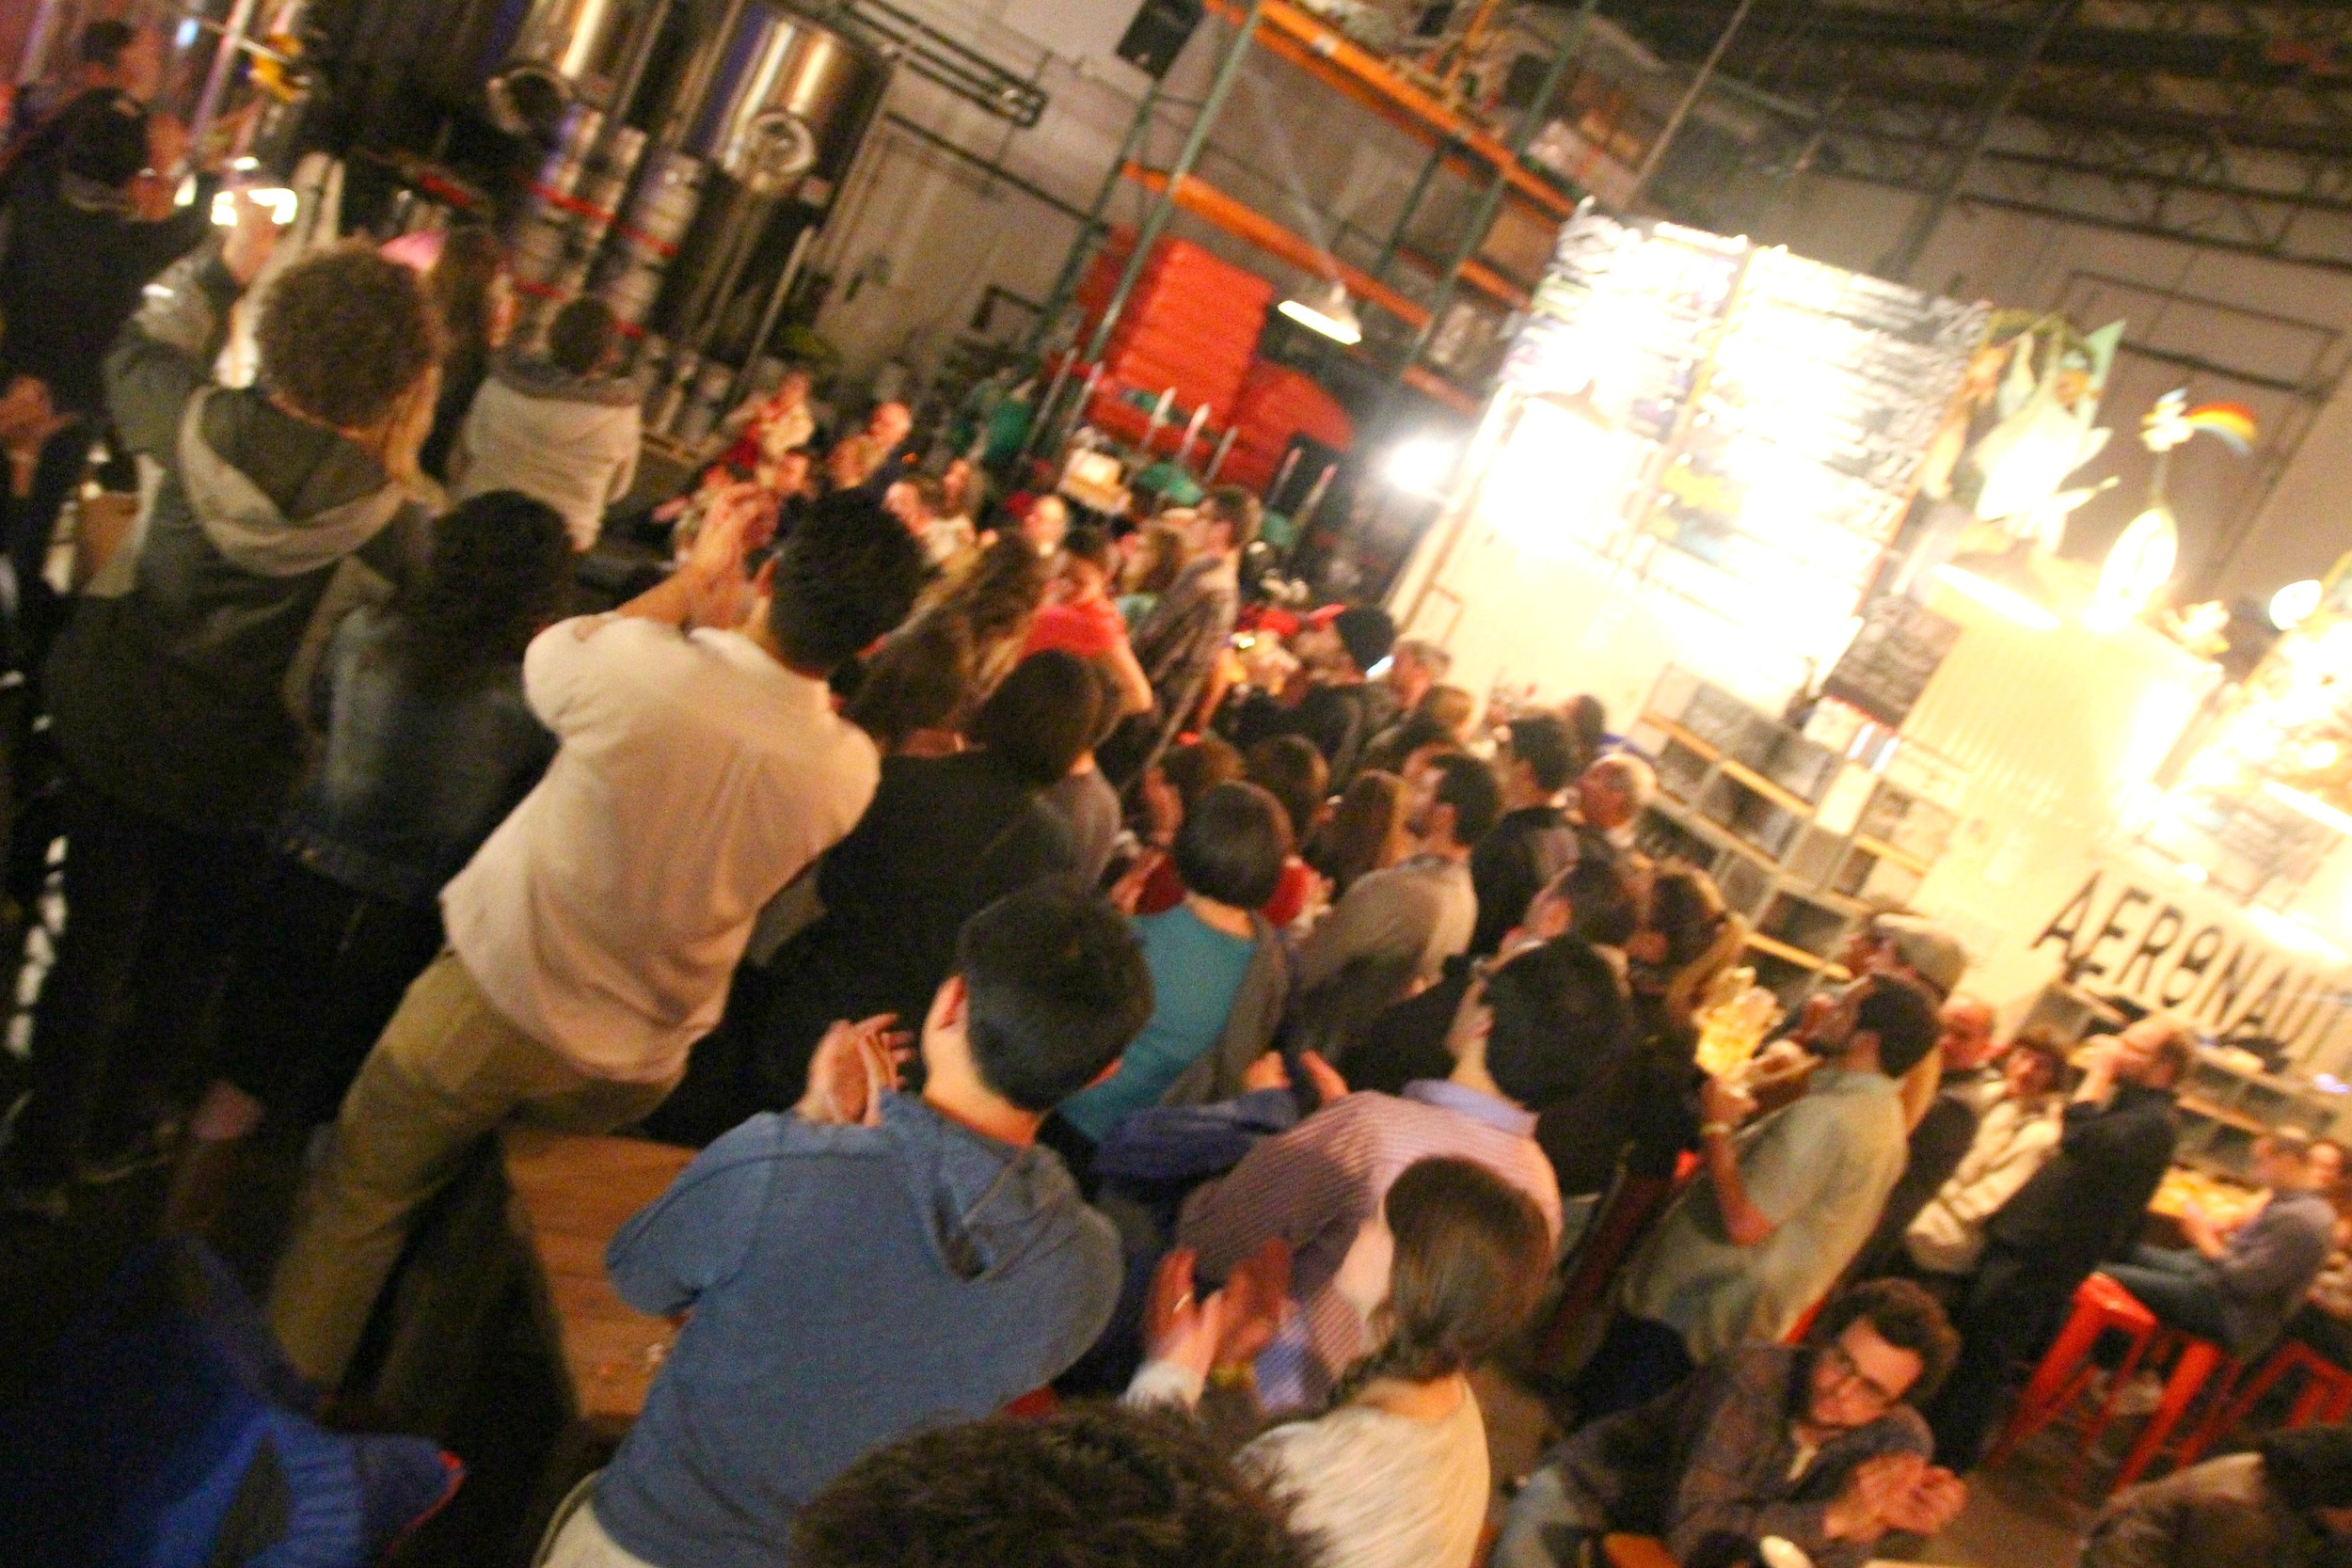 An enthusiastic crowd at Aeronaut Brewing